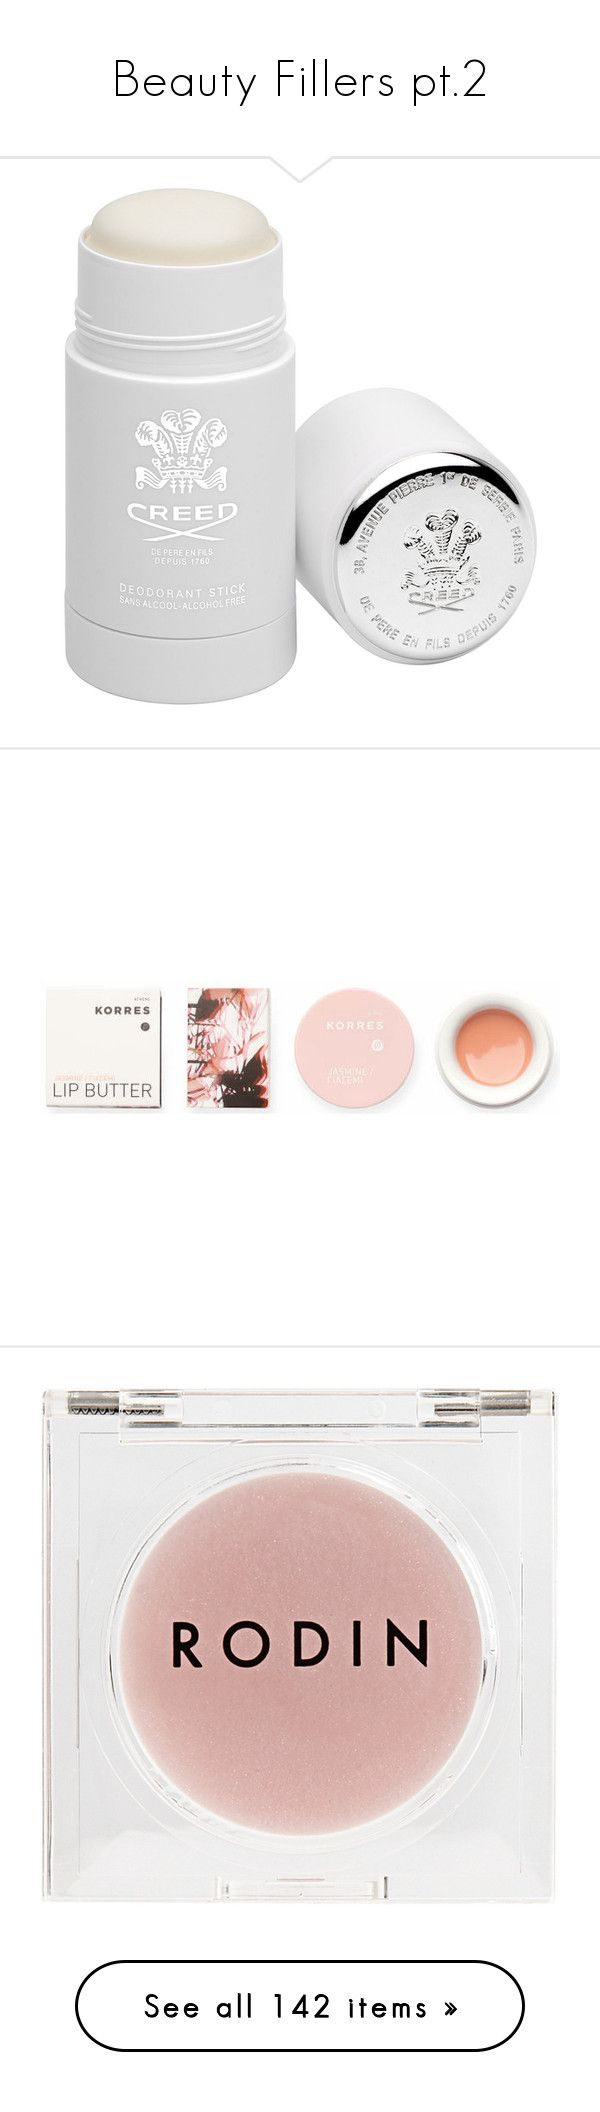 """""""Beauty Fillers pt.2"""" by thedailywear ❤ liked on Polyvore featuring men's fashion, men's grooming, men's deodorant, beauty, fillers, travel size men's deodorant, beauty products, skincare, lip care and lip treatments"""